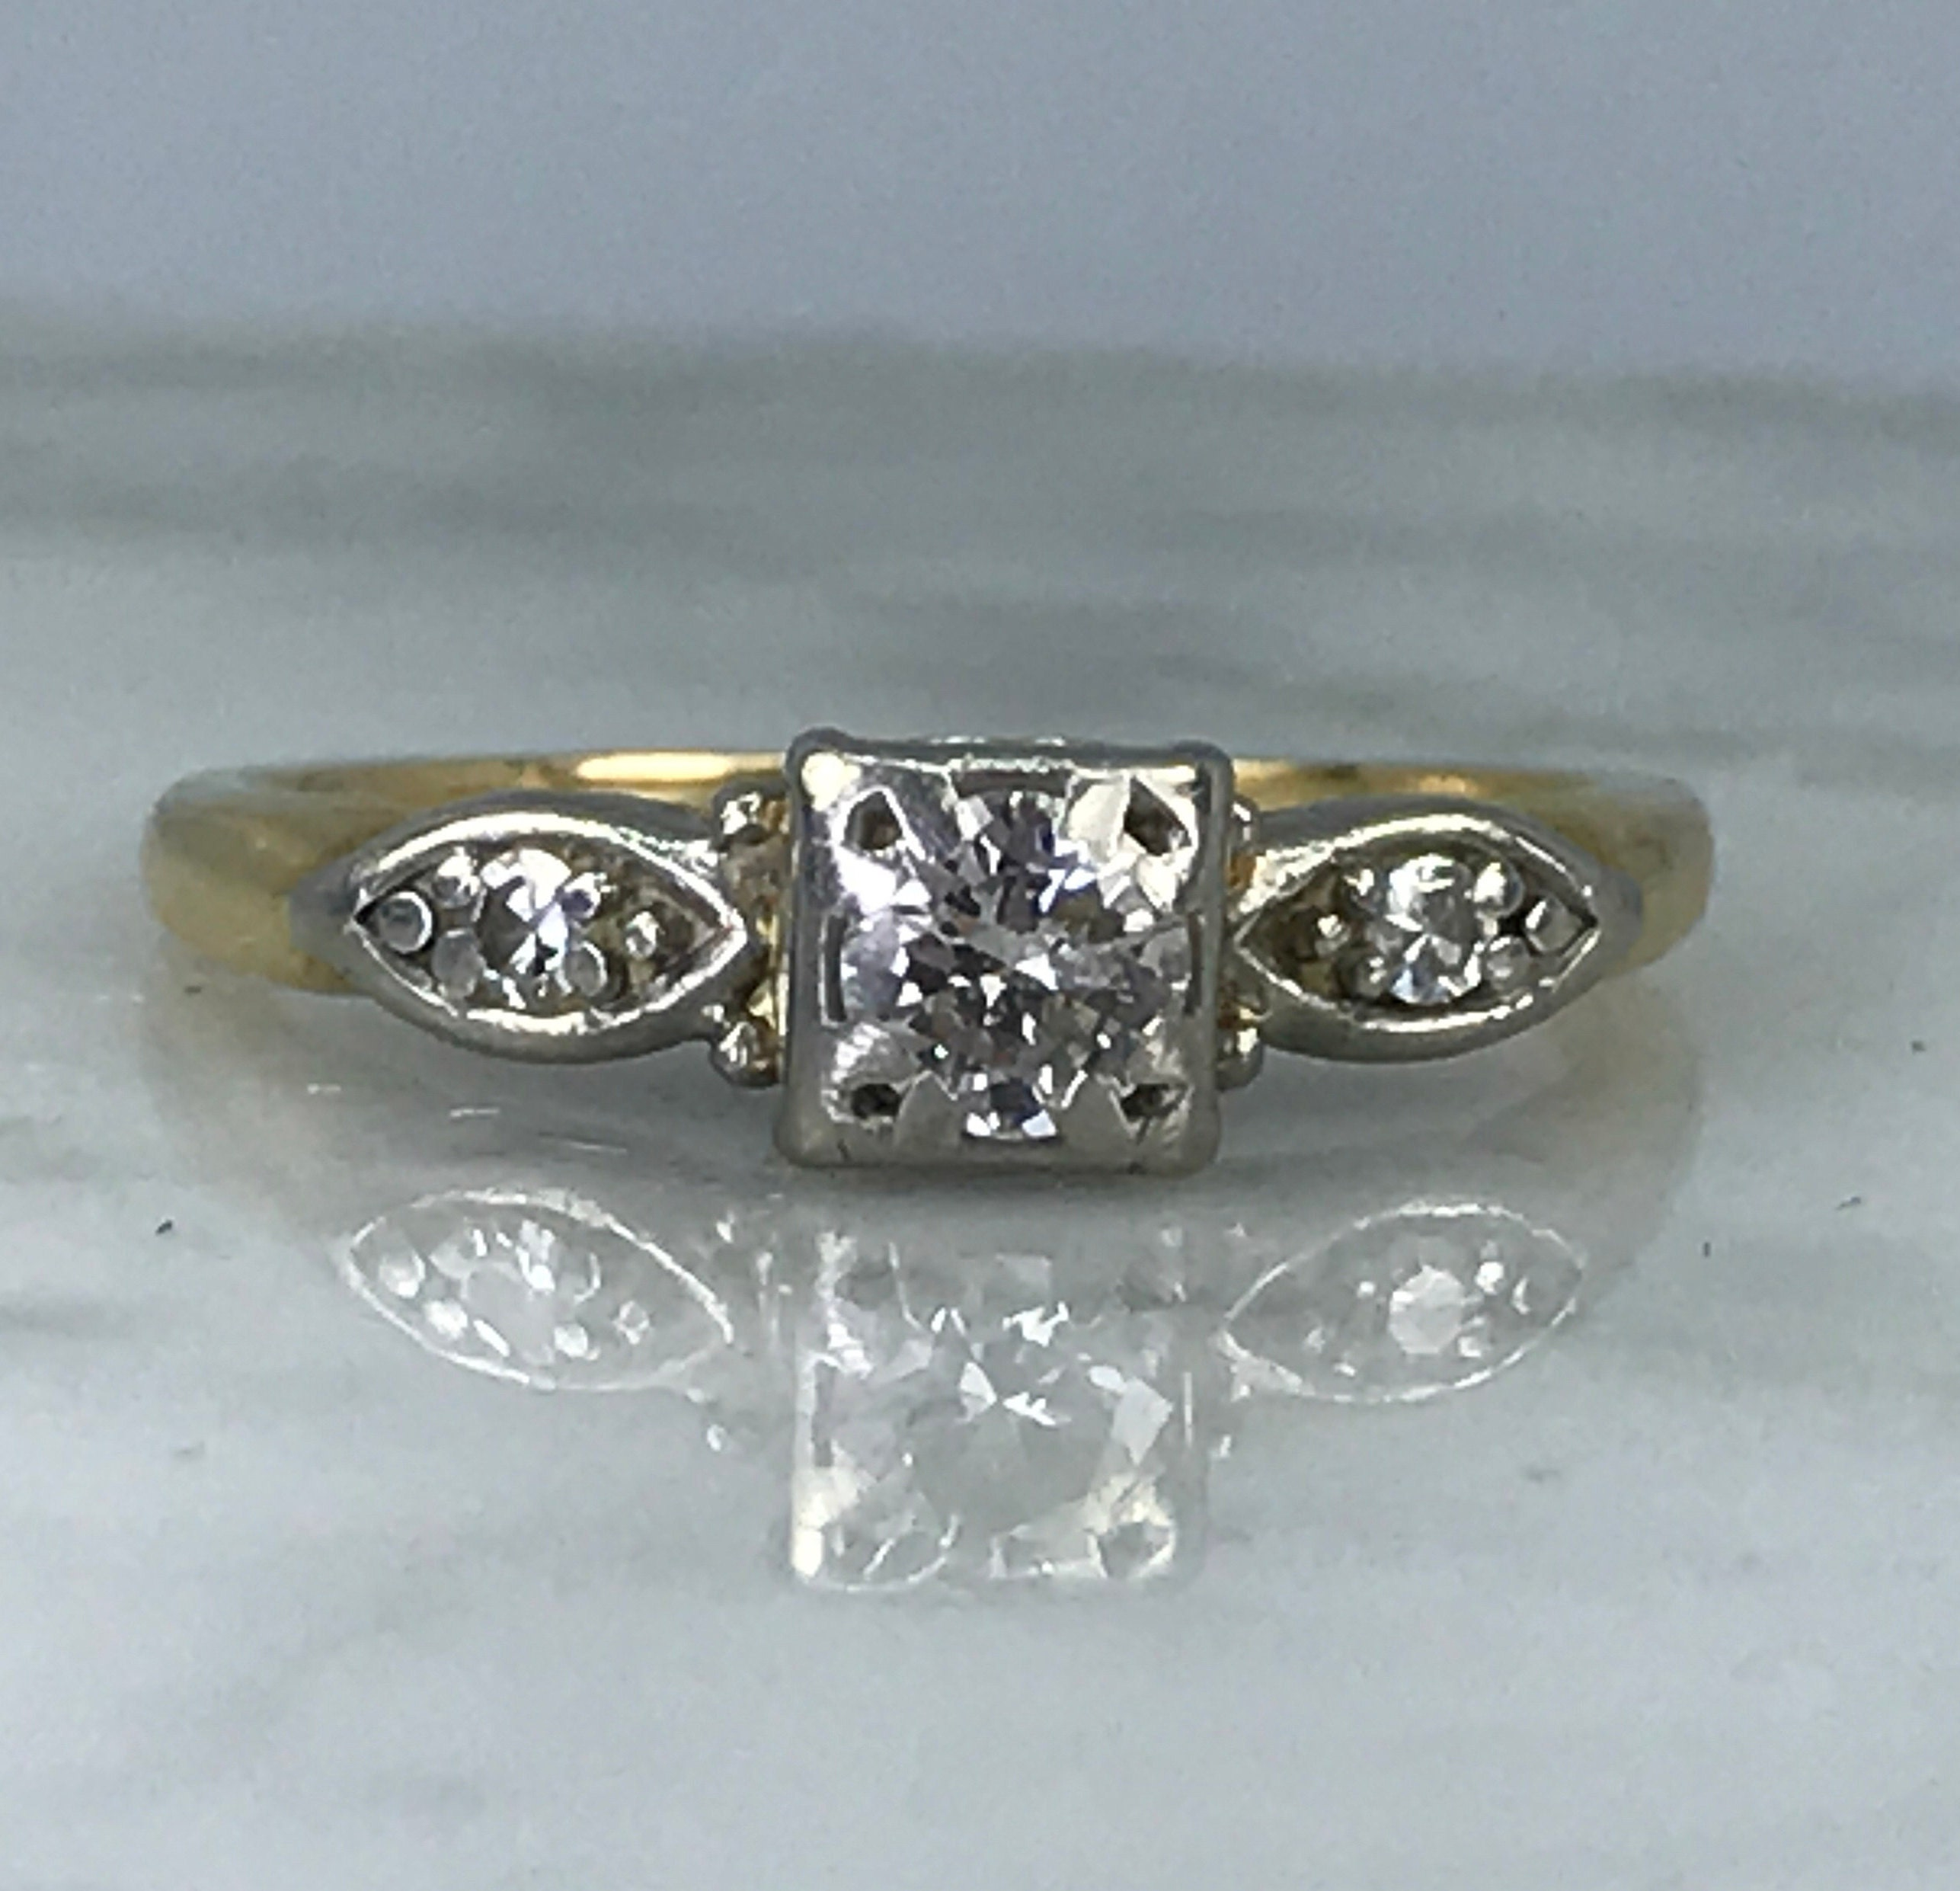 1920s Art Deco Diamond Engagement Ring By Jabel In 14k Gold